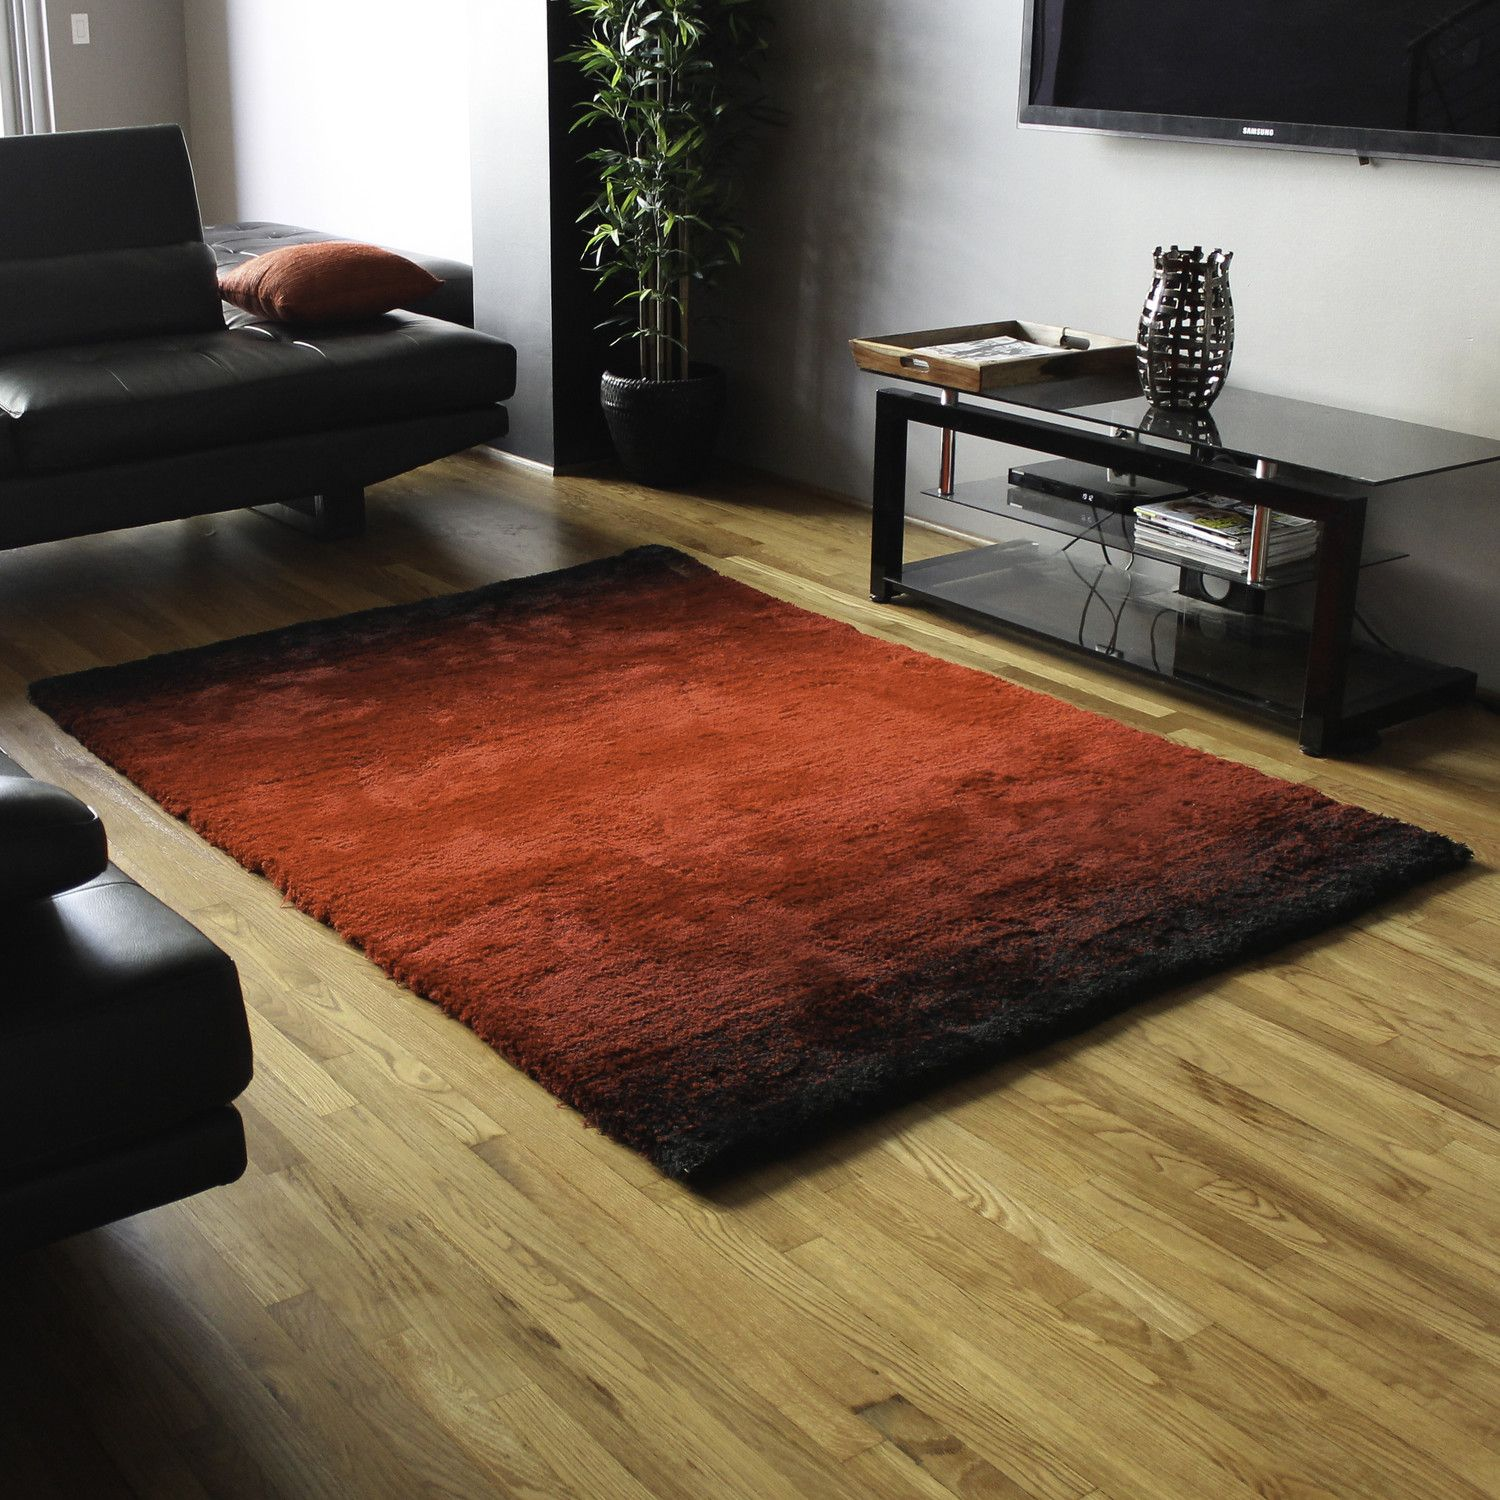 Exciting Shag Rug 8 10 Design Ideas Bring Harmonious Theme For Your